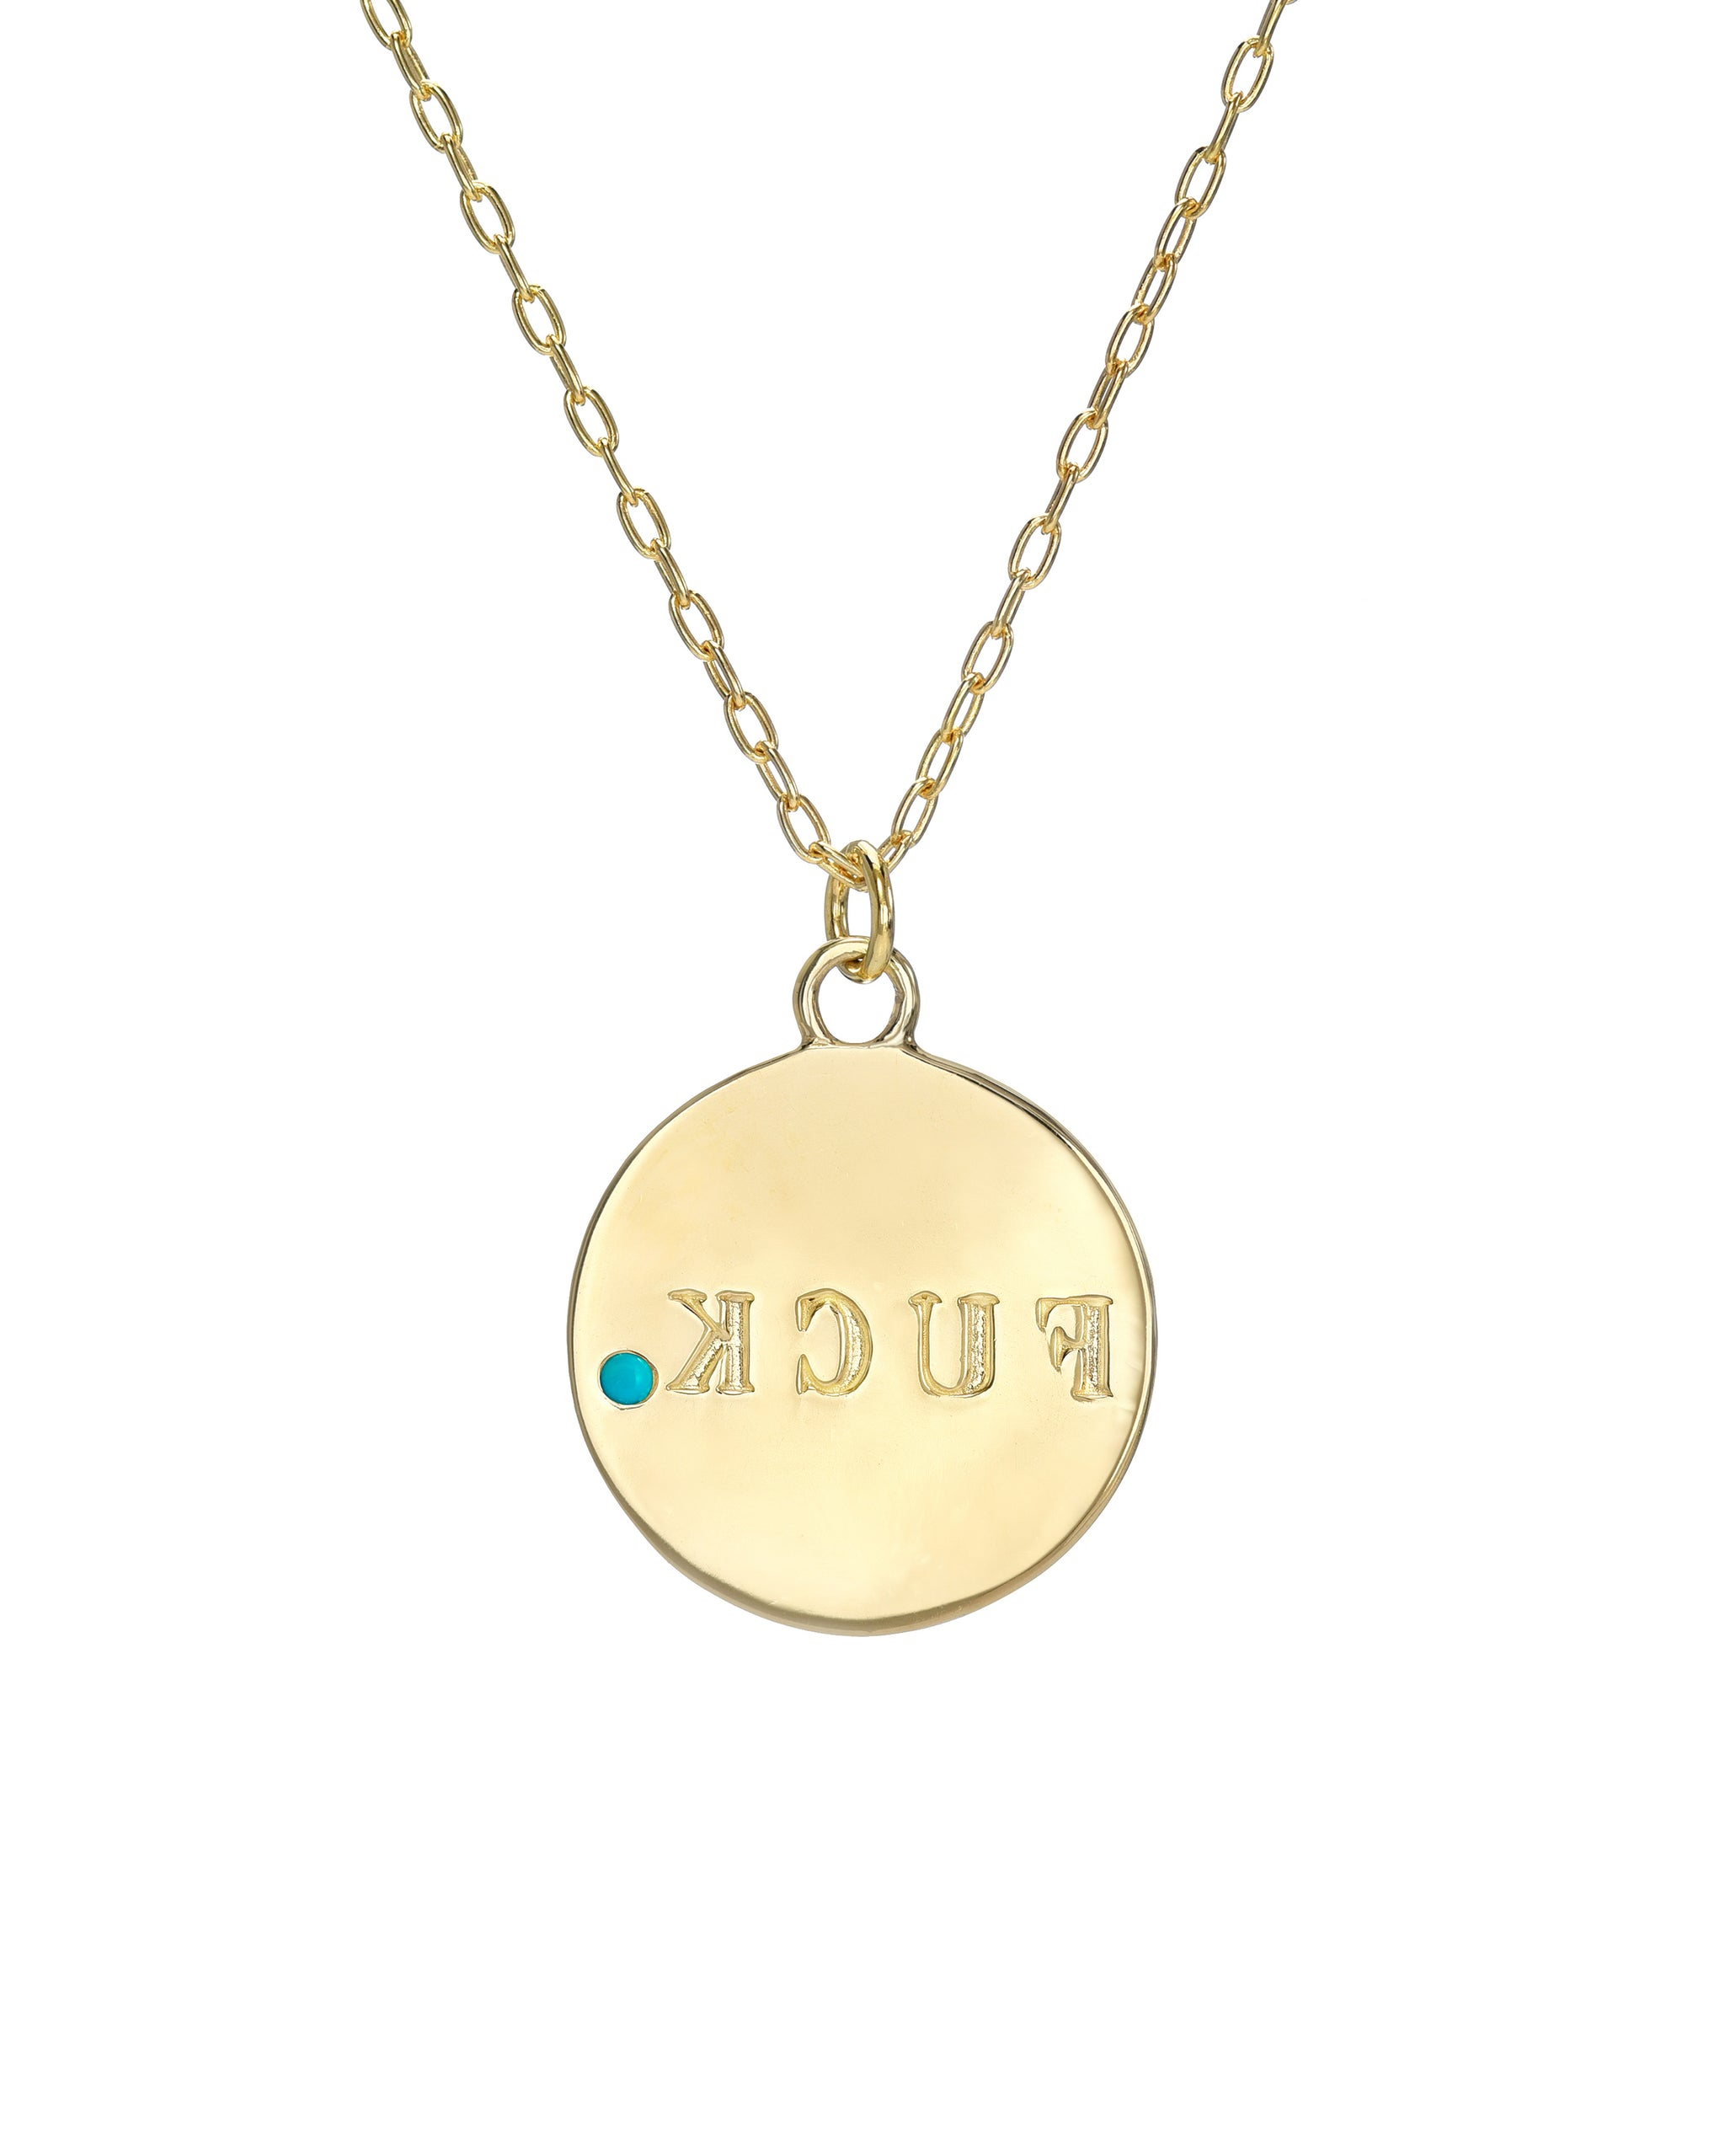 "Retrograde Necklace, 14k Gold Vermeil Necklace with F*CK spelled inversely and a 2mm  semi-precious stone, 16""-18"" adjustable chain, handmade in Los Angeles, California by Turquoise and Tobacco"